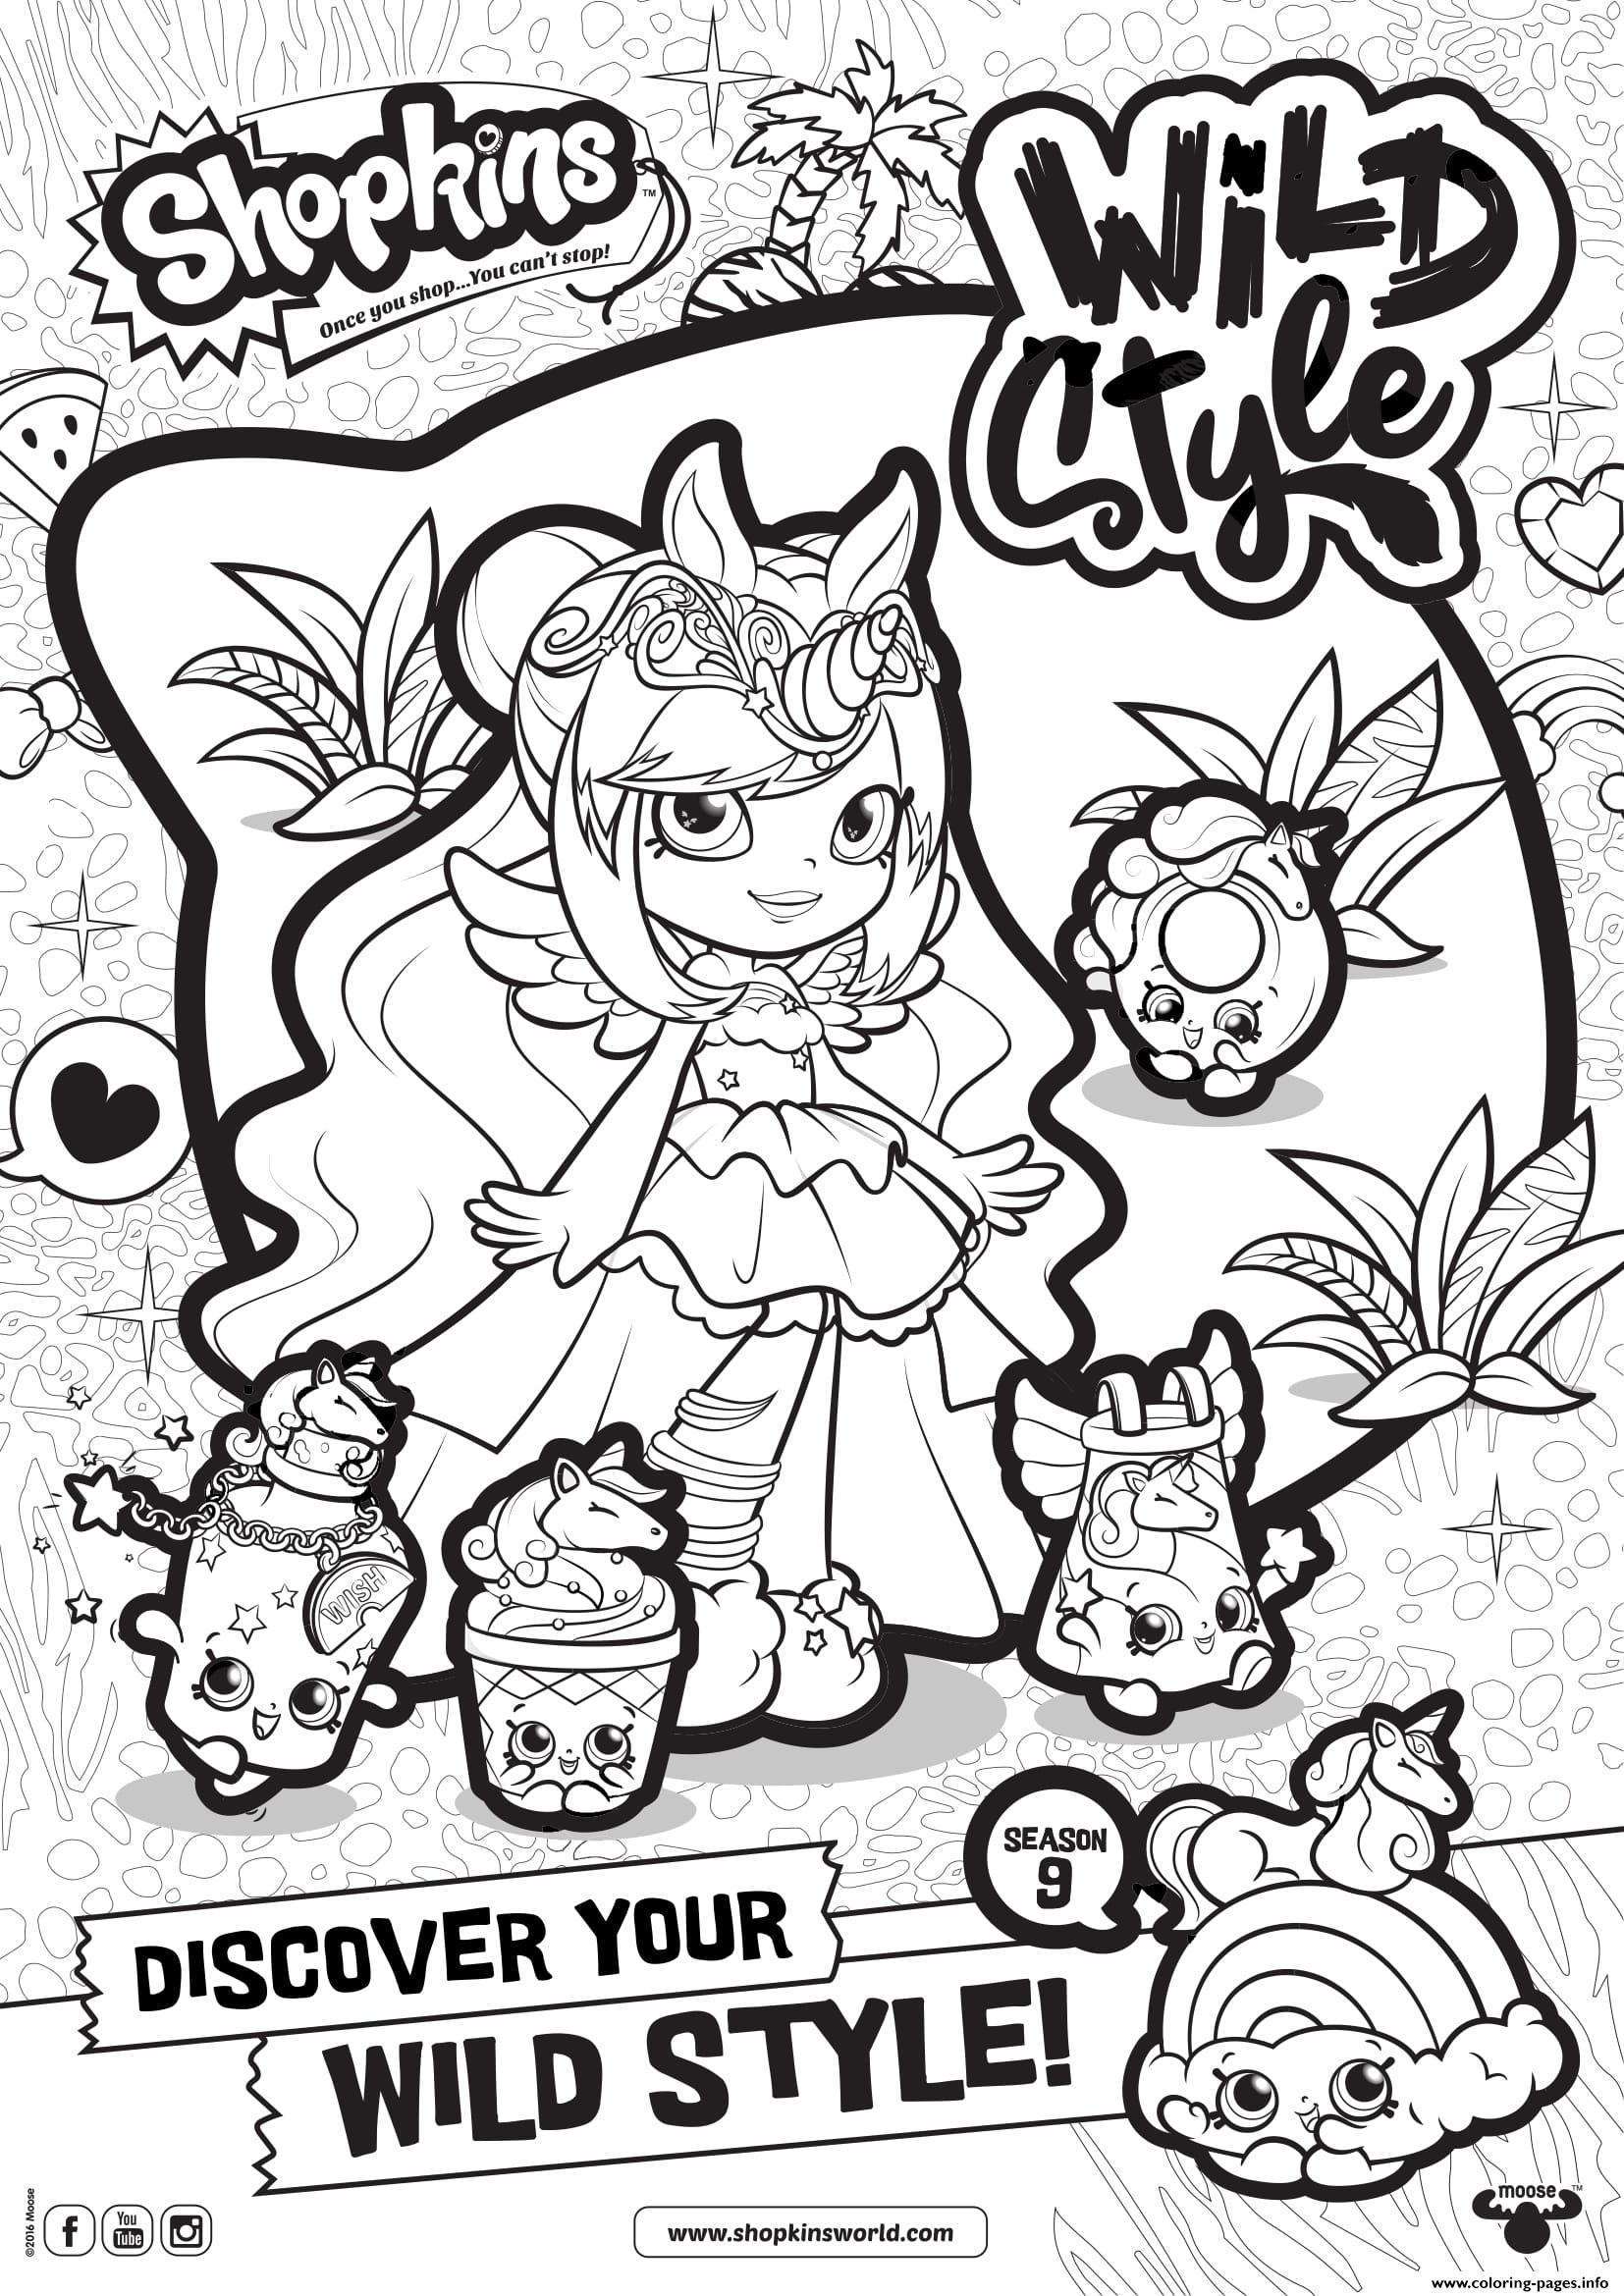 Shopkins Season 9 Wild Style 5 coloring pages